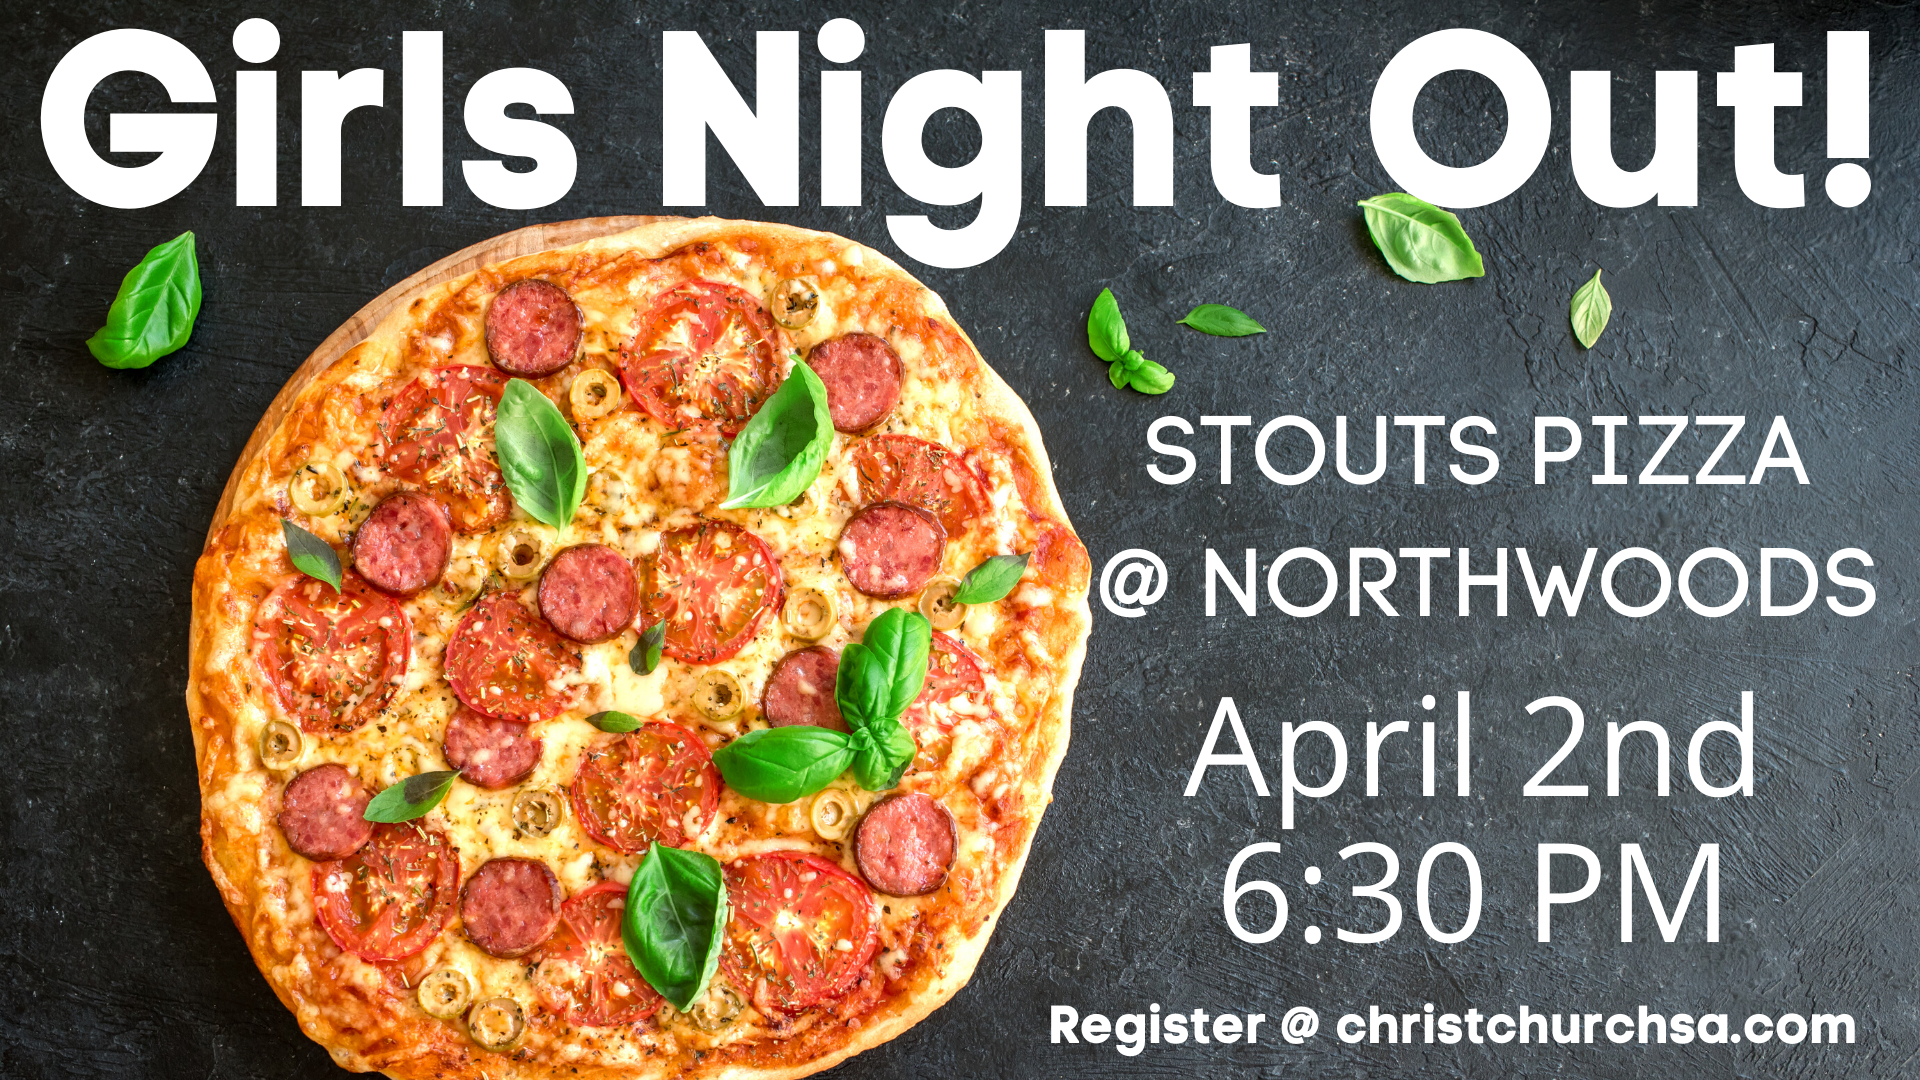 STOUTS Pizza Girls Night Out! image